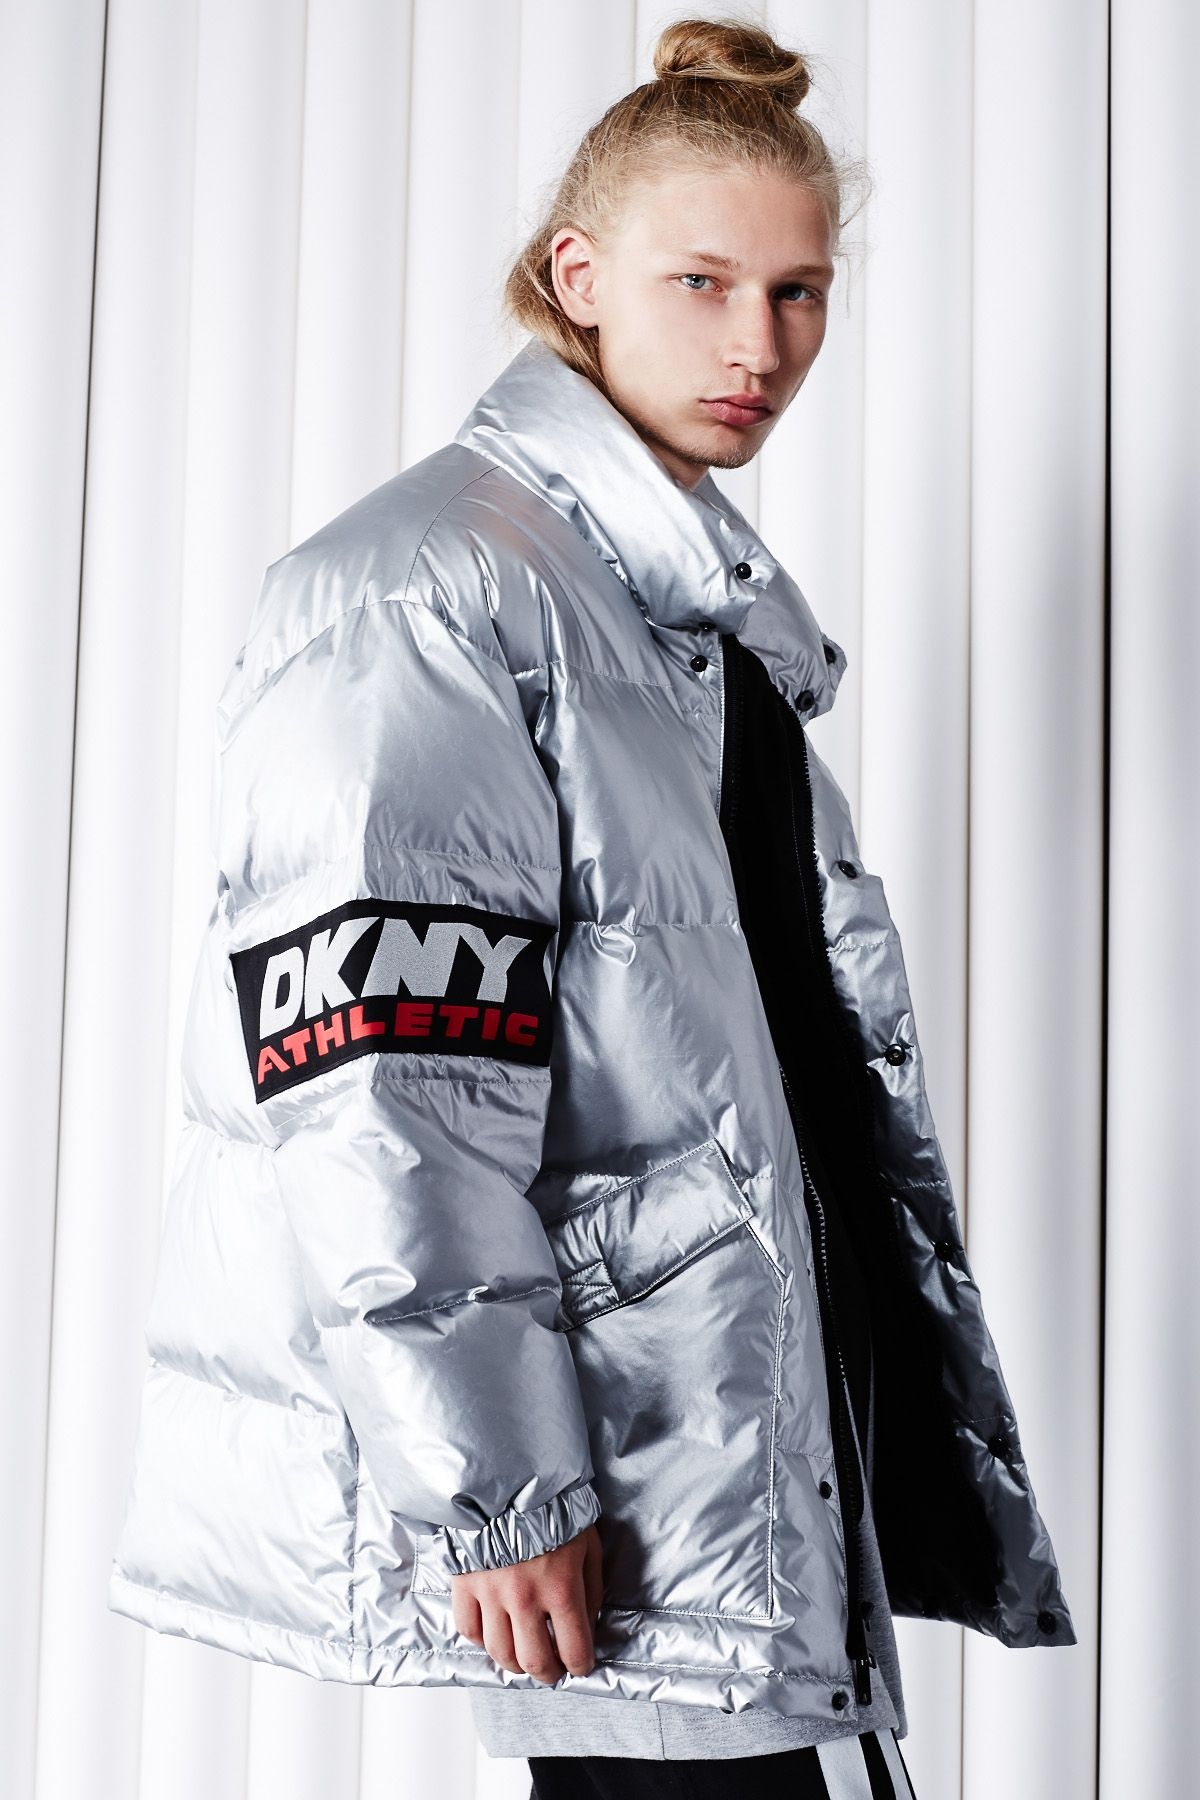 Dkny For Opening Ceremony Athletic Tag Logo Puffer Jacket Clothes Design Winter Puffer Coat Down Jacket [ 1800 x 1200 Pixel ]